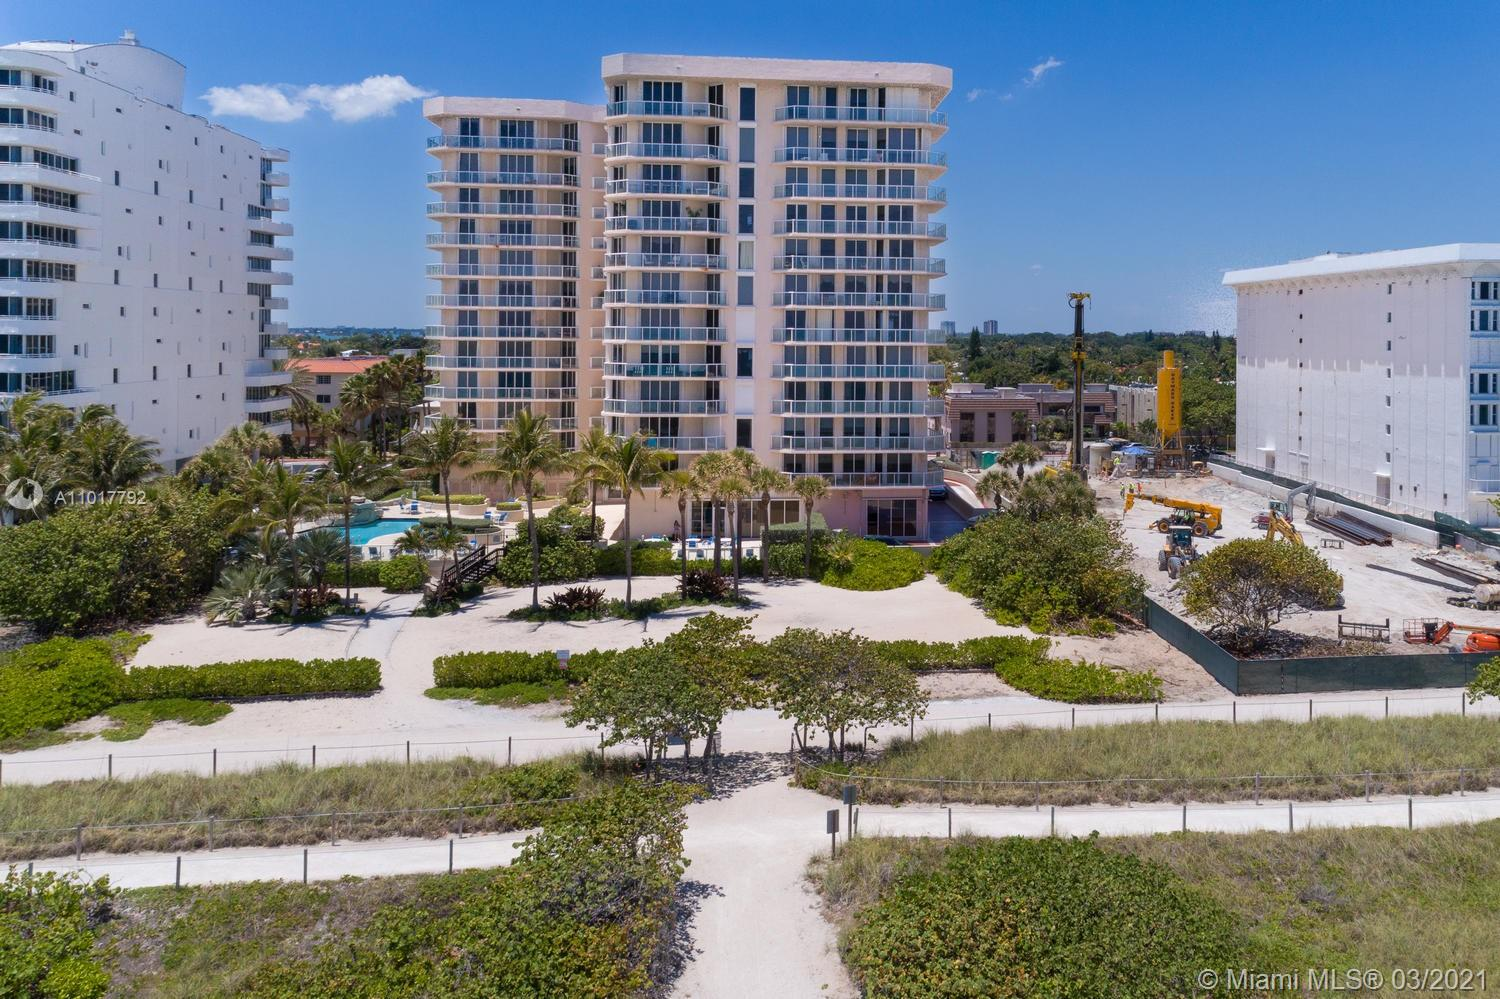 Photo of 8925 Collins Ave #2A, Surfside, Florida, 33154 - View from master bedroom to garden (being replanned) and ocean view.